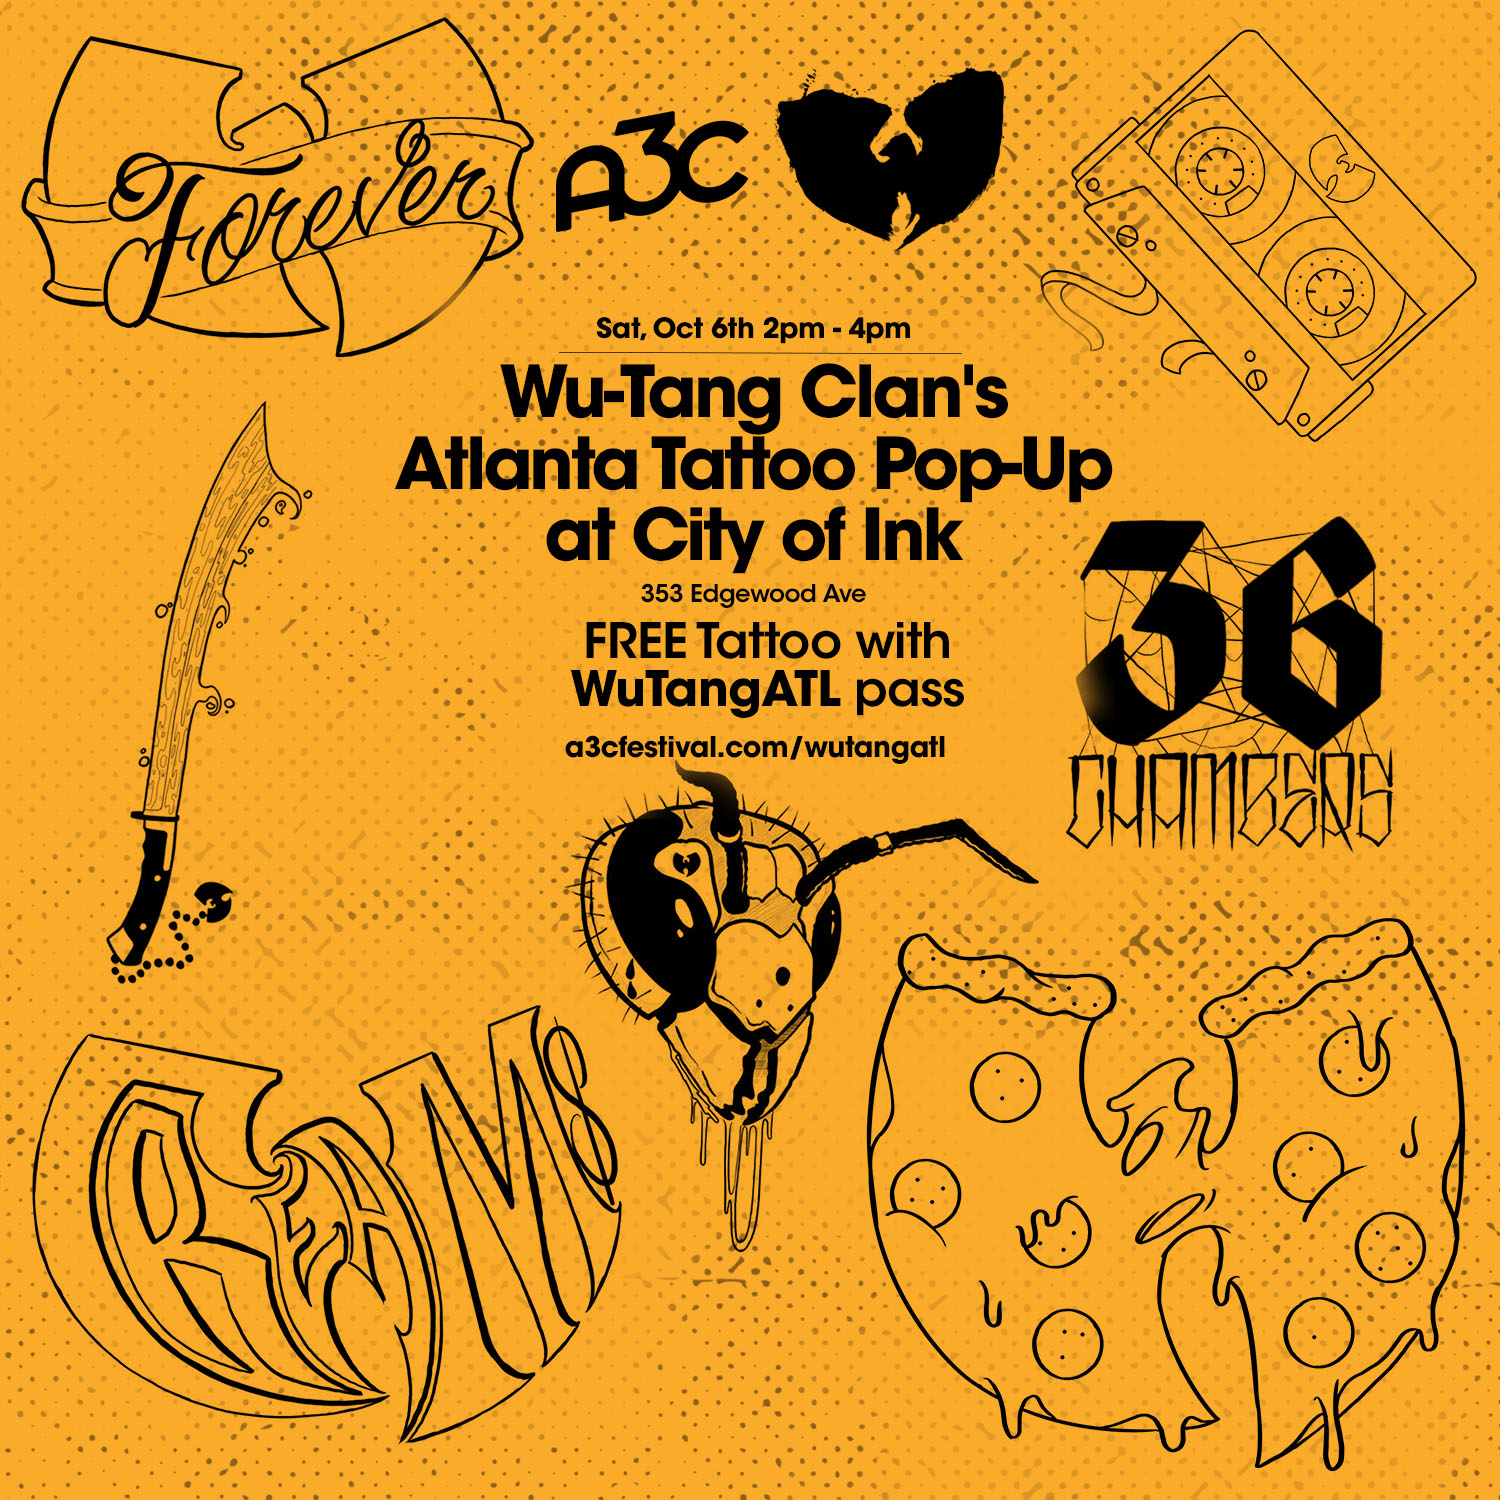 WuTangATL - City of Ink